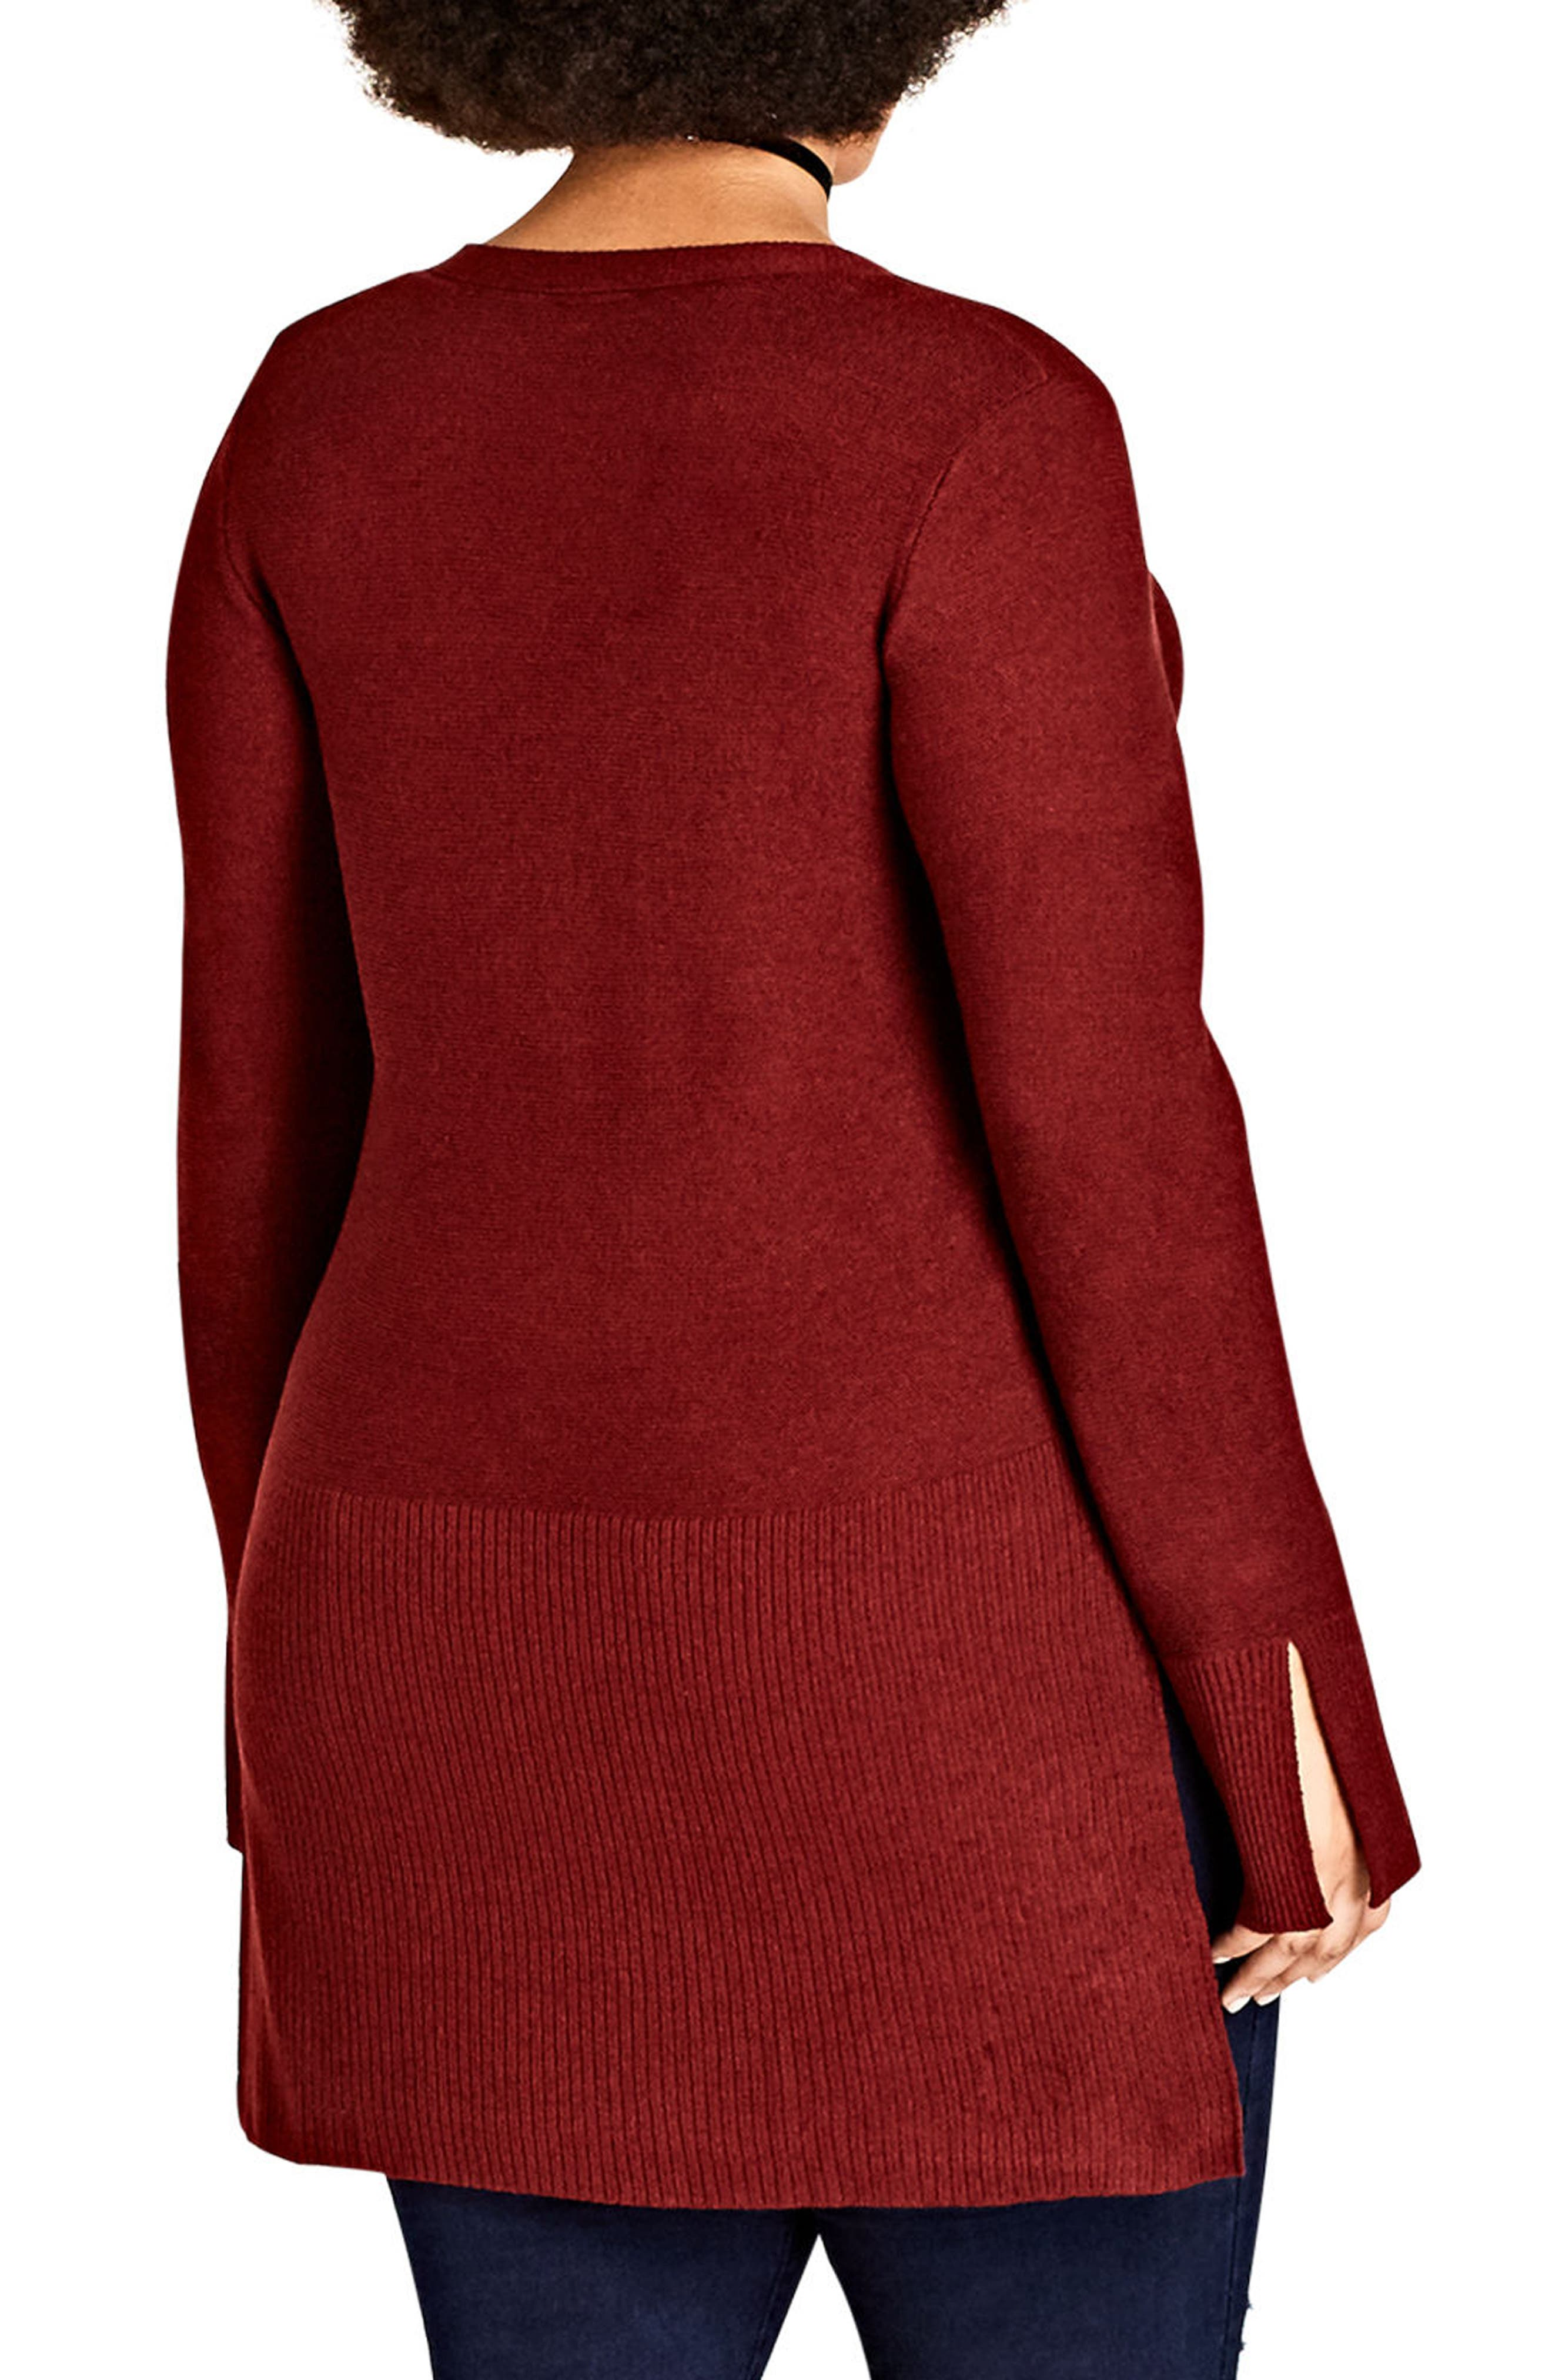 Crisscross Neck Sweater,                             Alternate thumbnail 2, color,                             Ruby